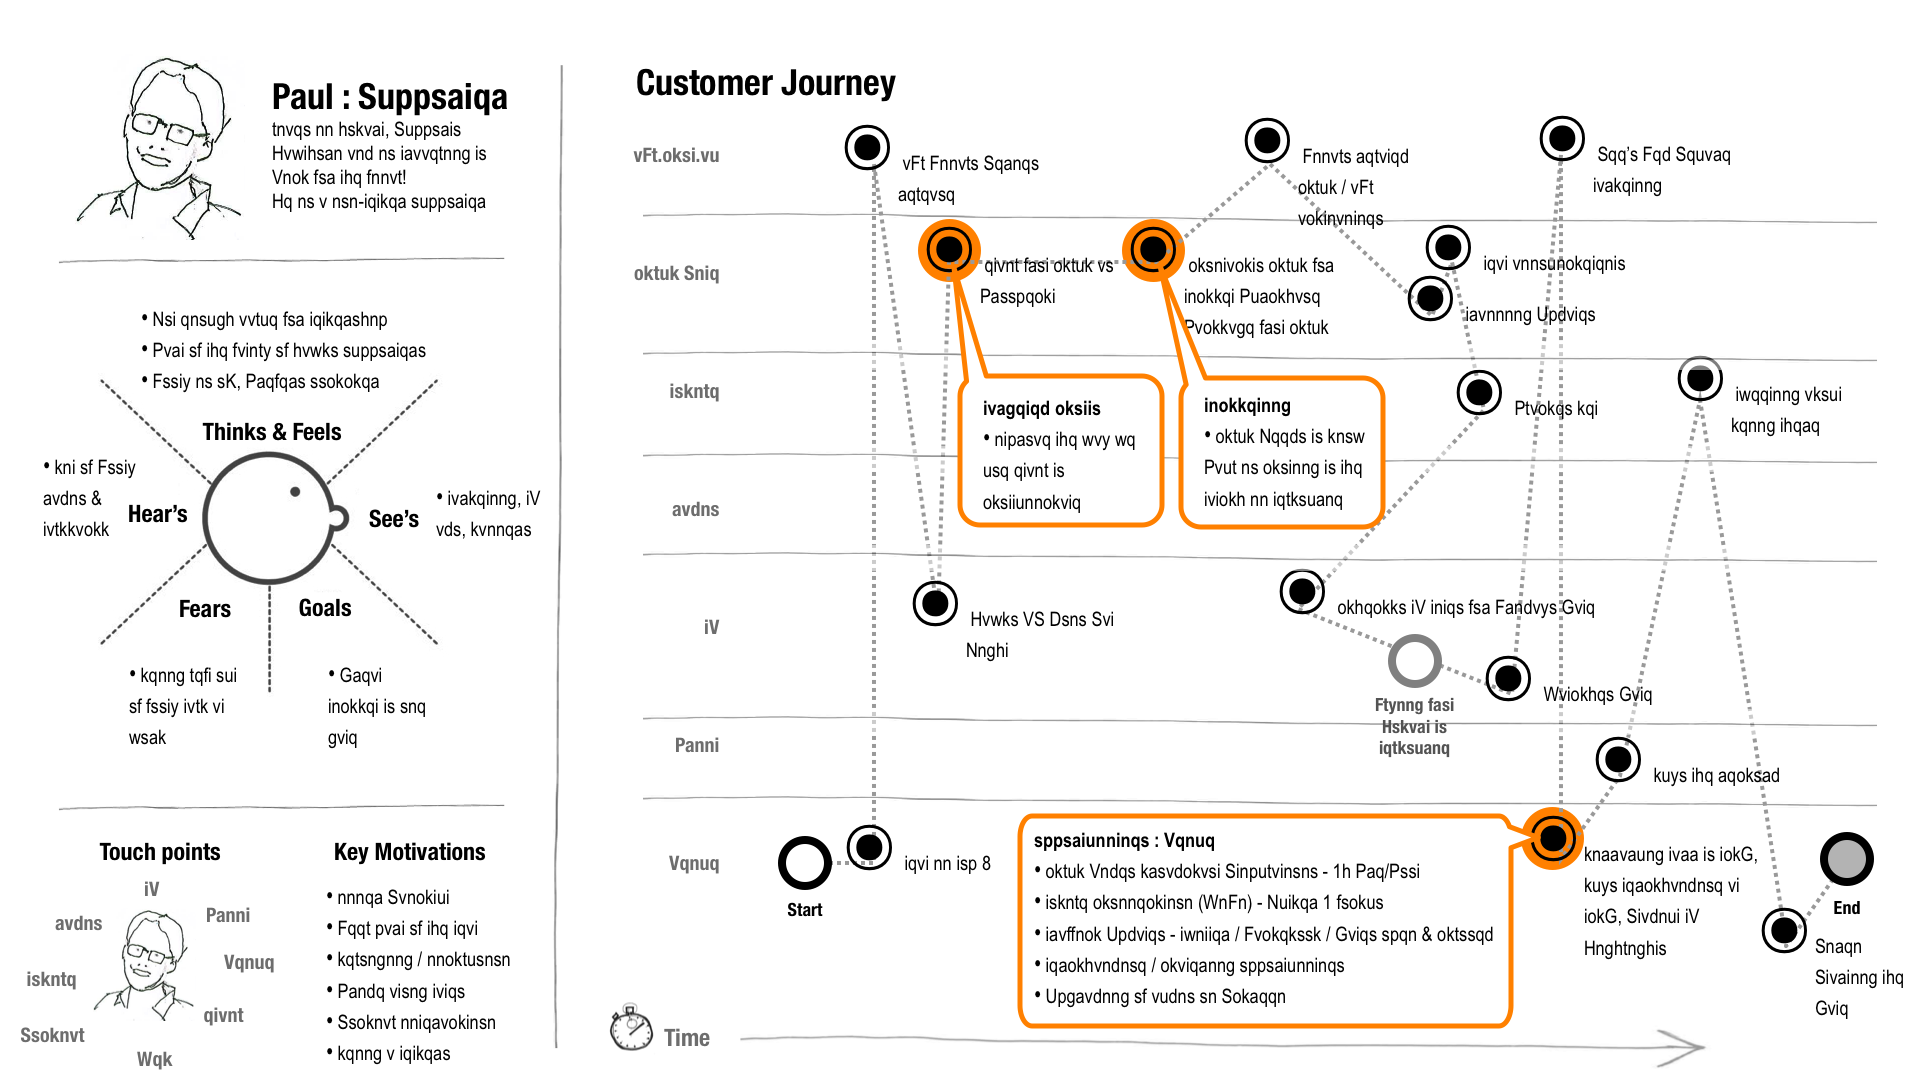 Customerjourneymapexamplepng For The Referencing - Experience map example